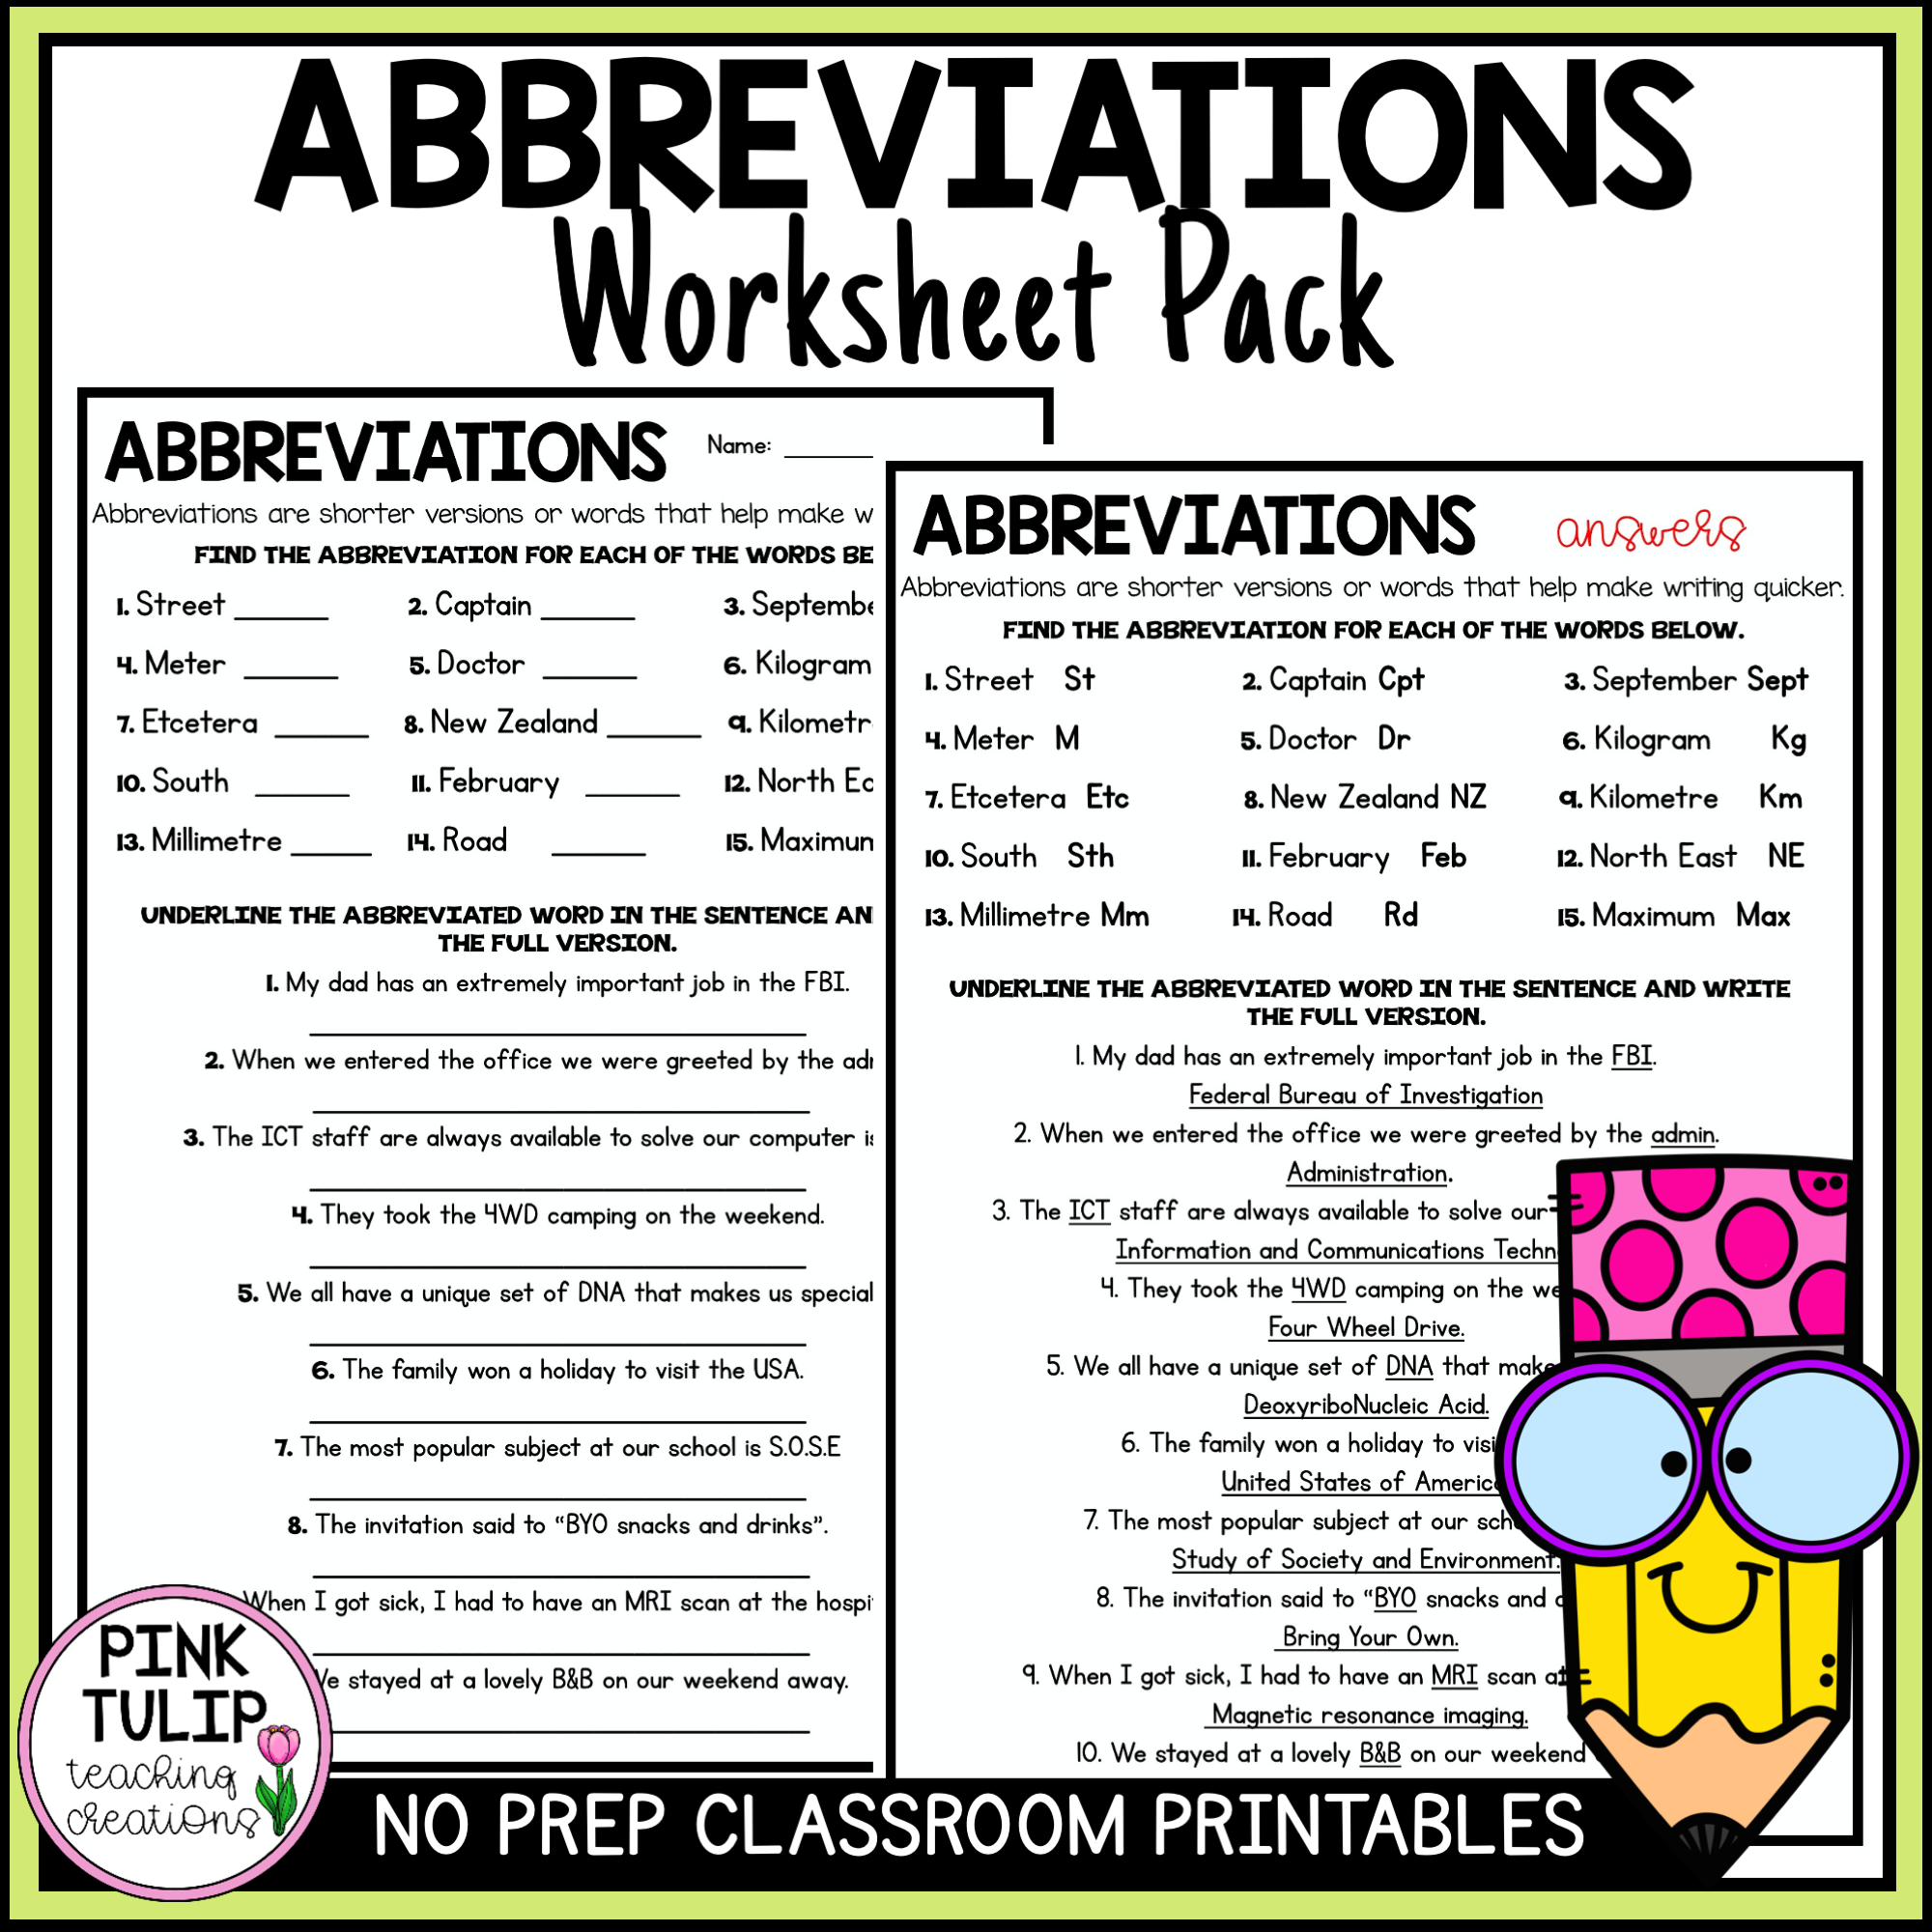 One Worksheets To Help Students Understand Abbreviations